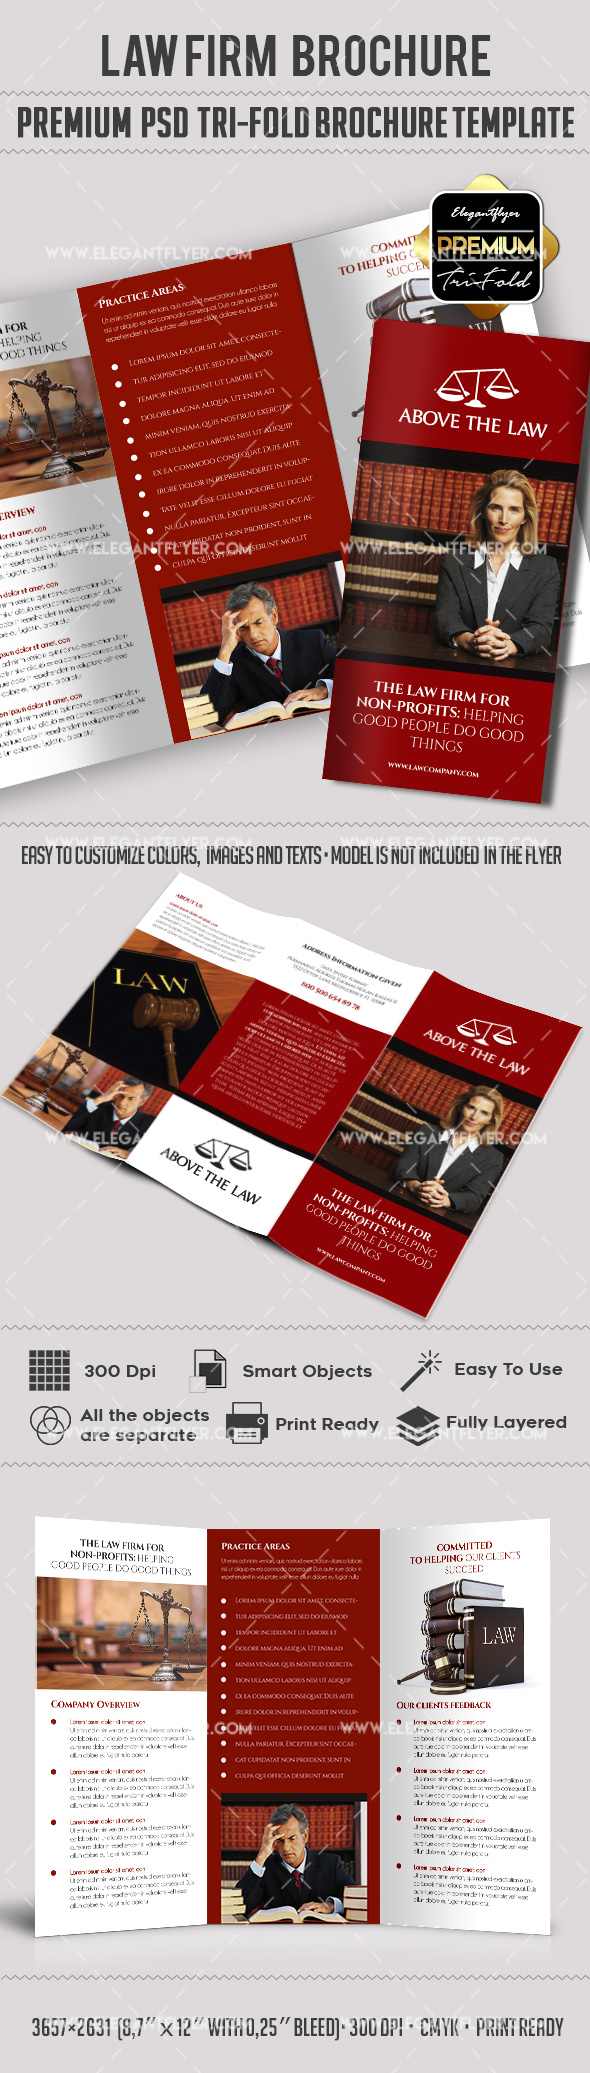 Law company premium tri fold psd brochure template by for Tri fold brochure template psd